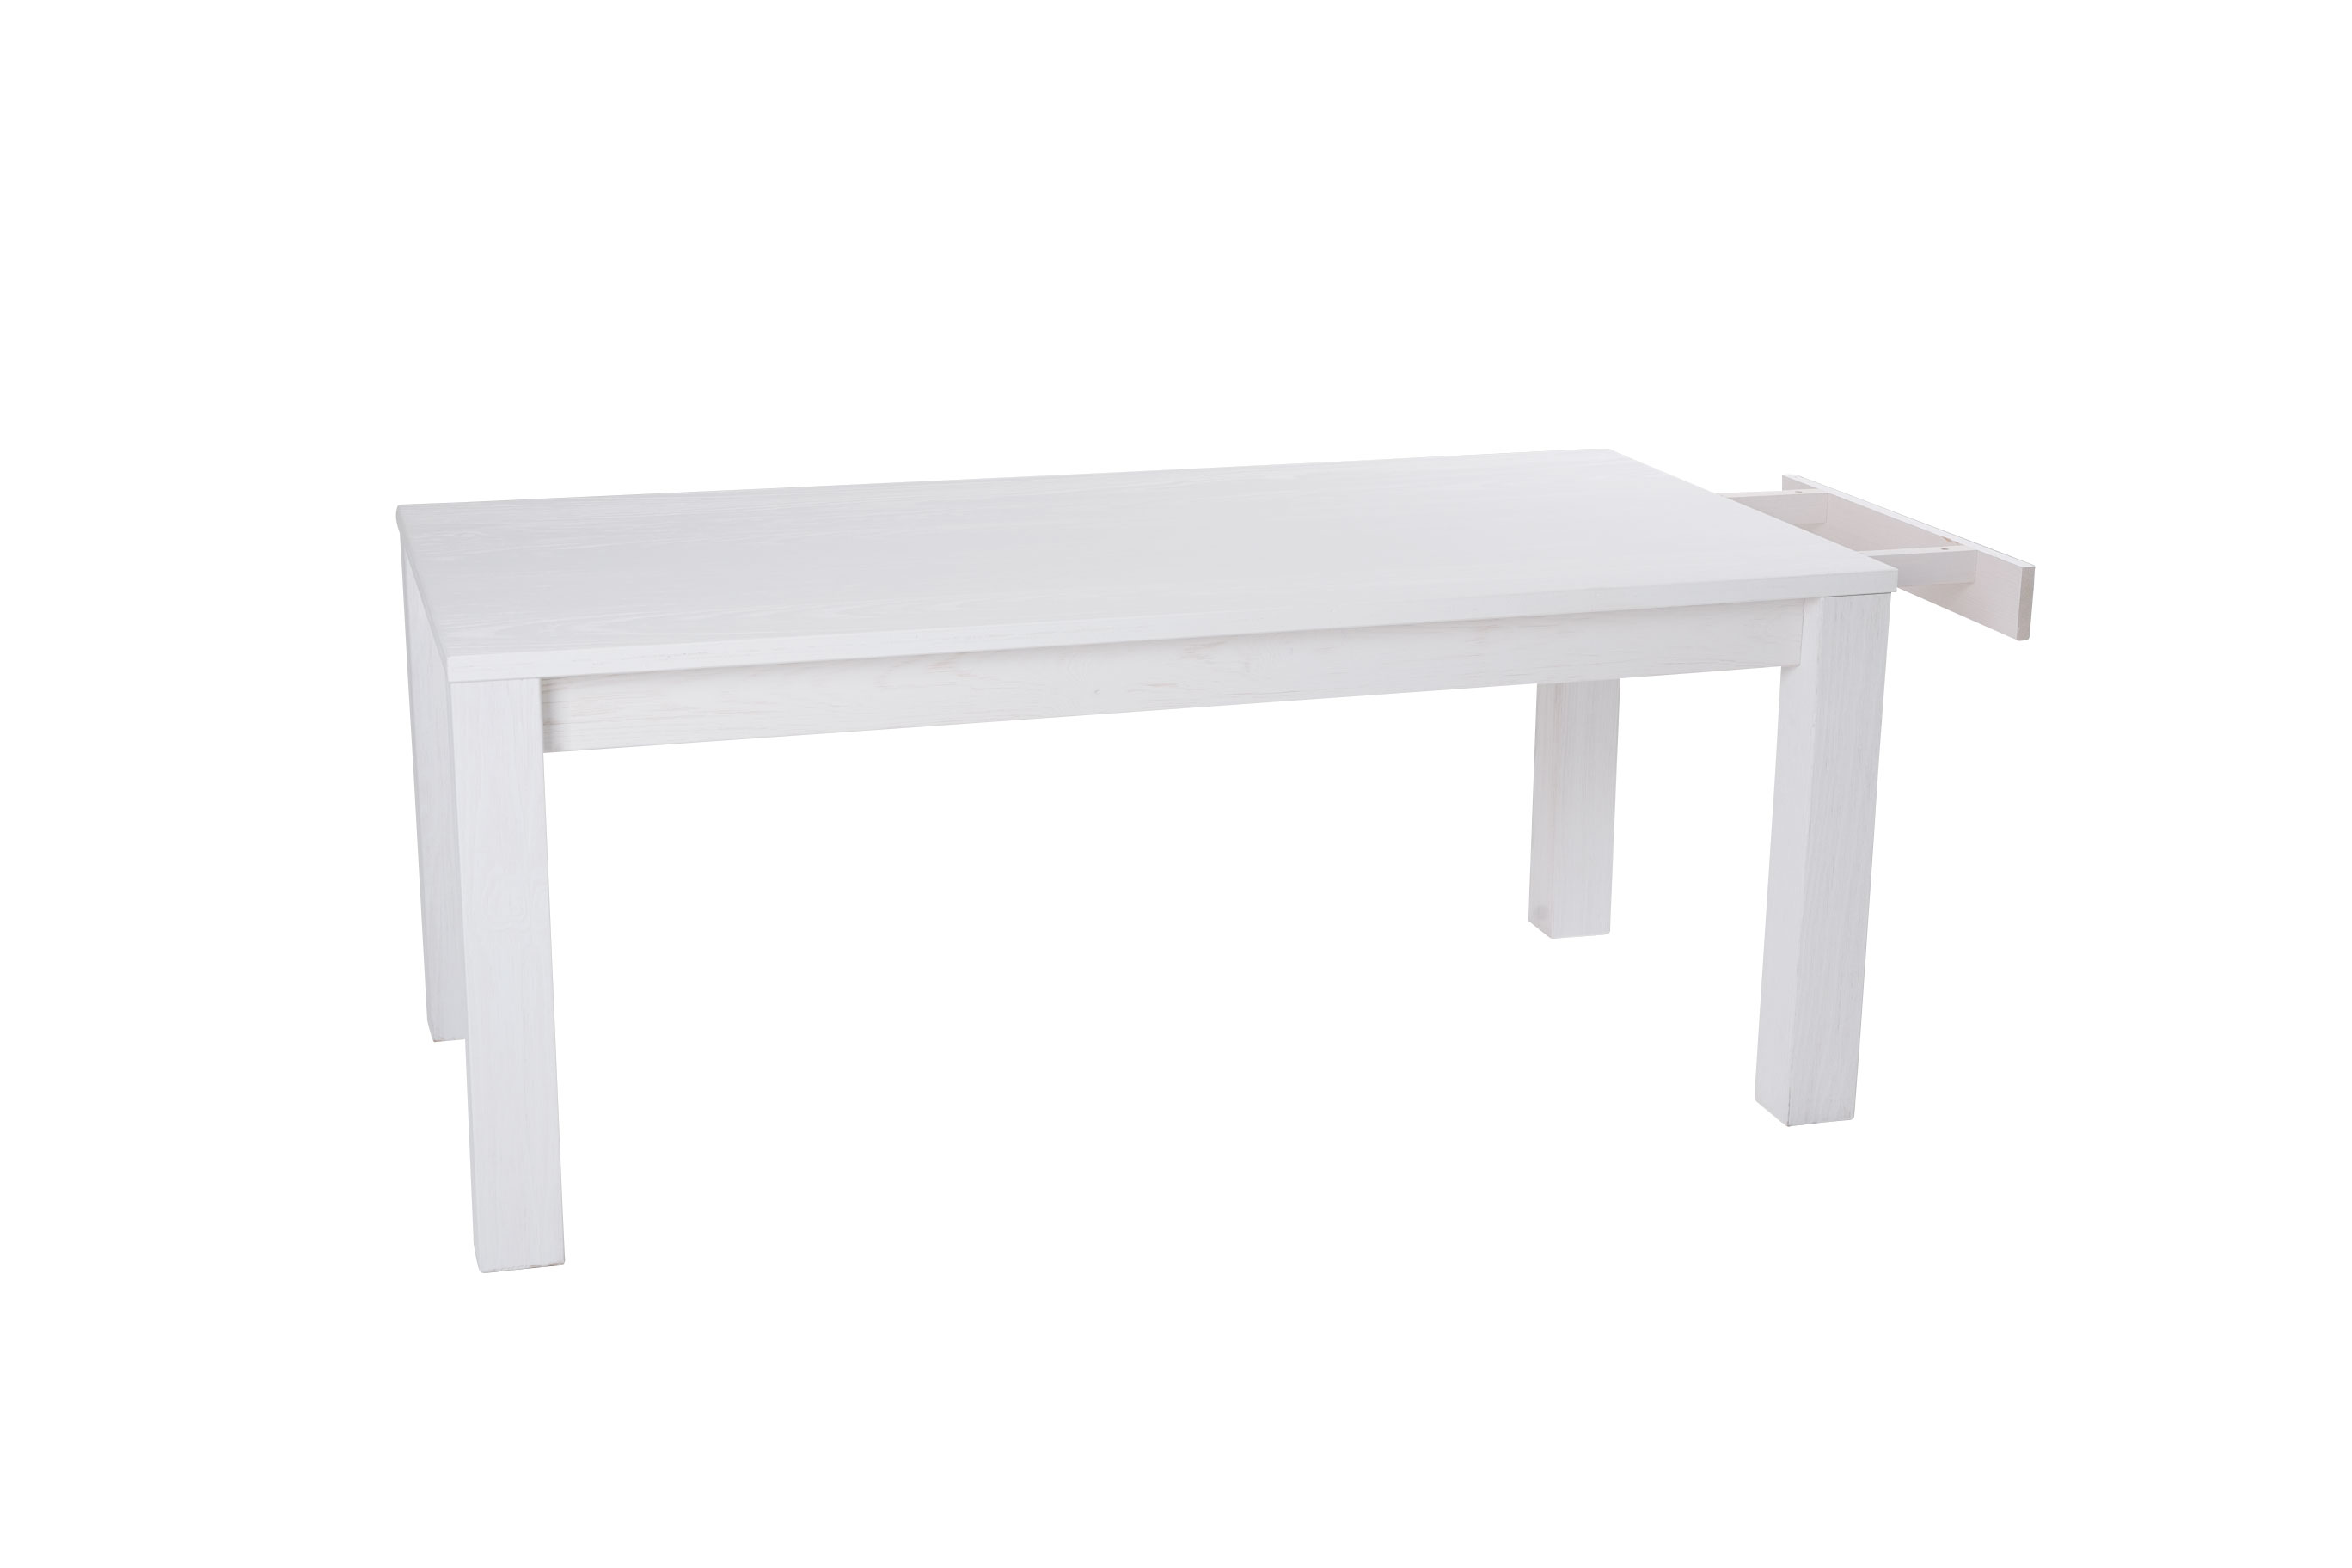 Table de s jour rectangulaire en pin massif laqu e blanc for Table sejour avec rallonge